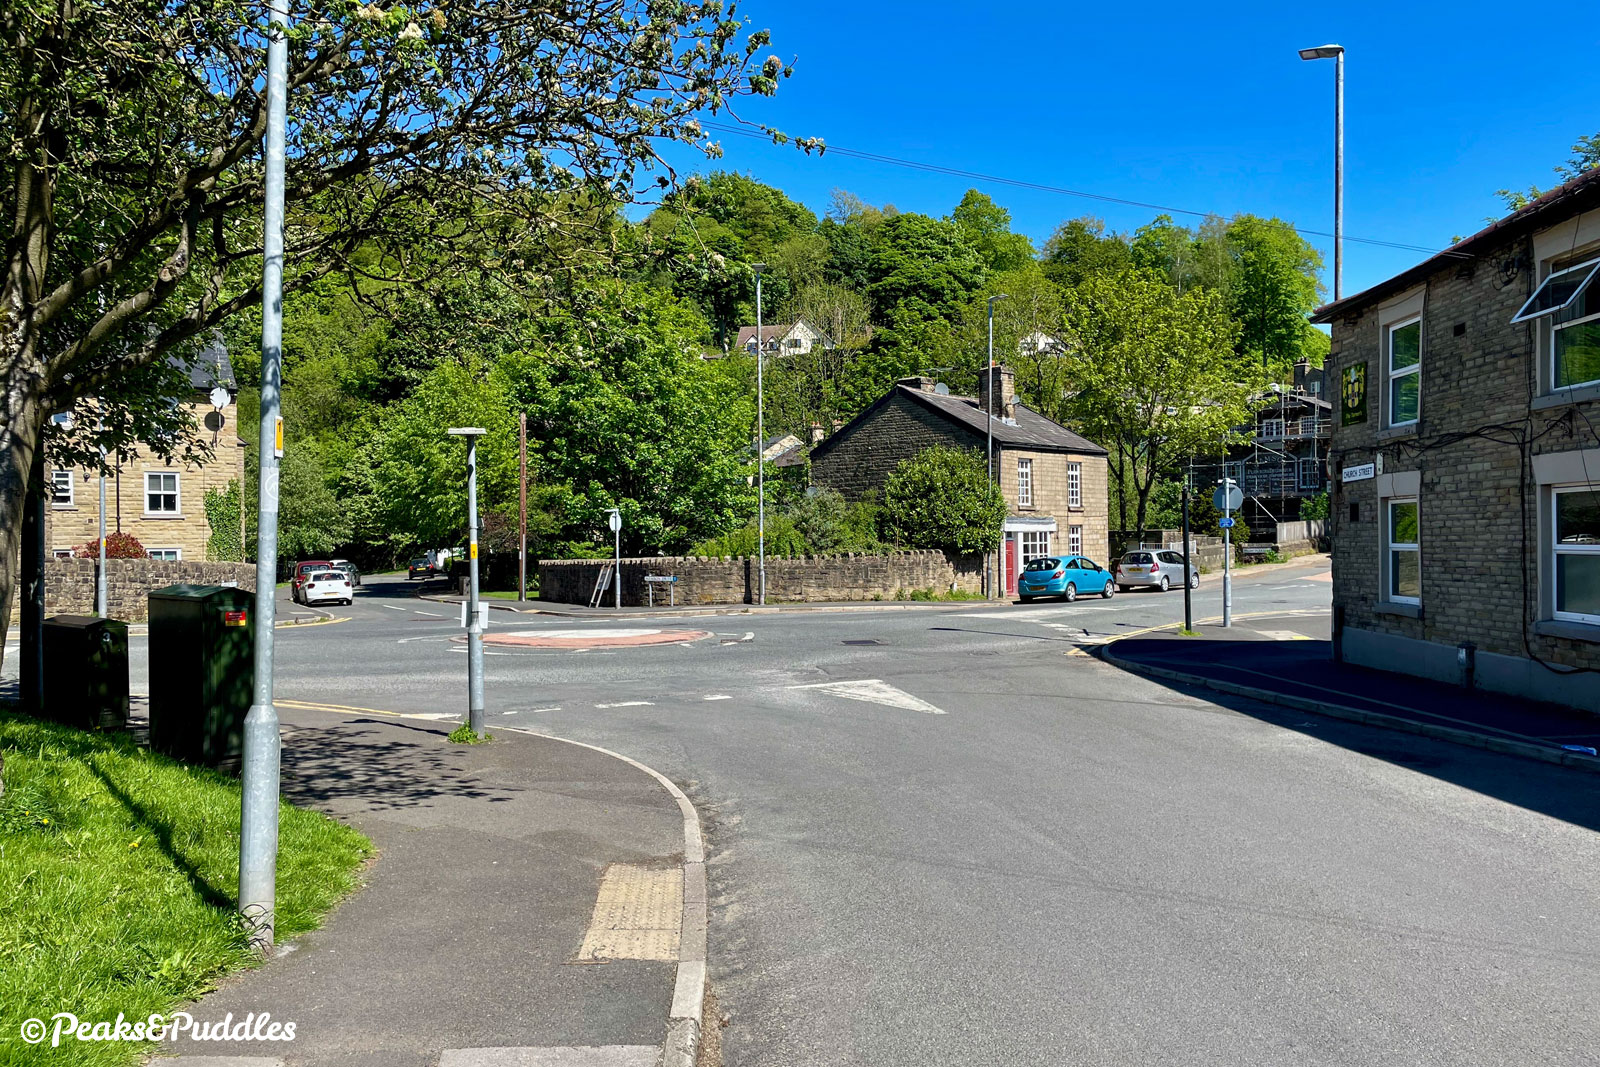 At the roundabout at the end of Church Street, turn right then immediately right again, into Ingersley Road. Be careful to go right around the roundabout, avoiding the raised centre.